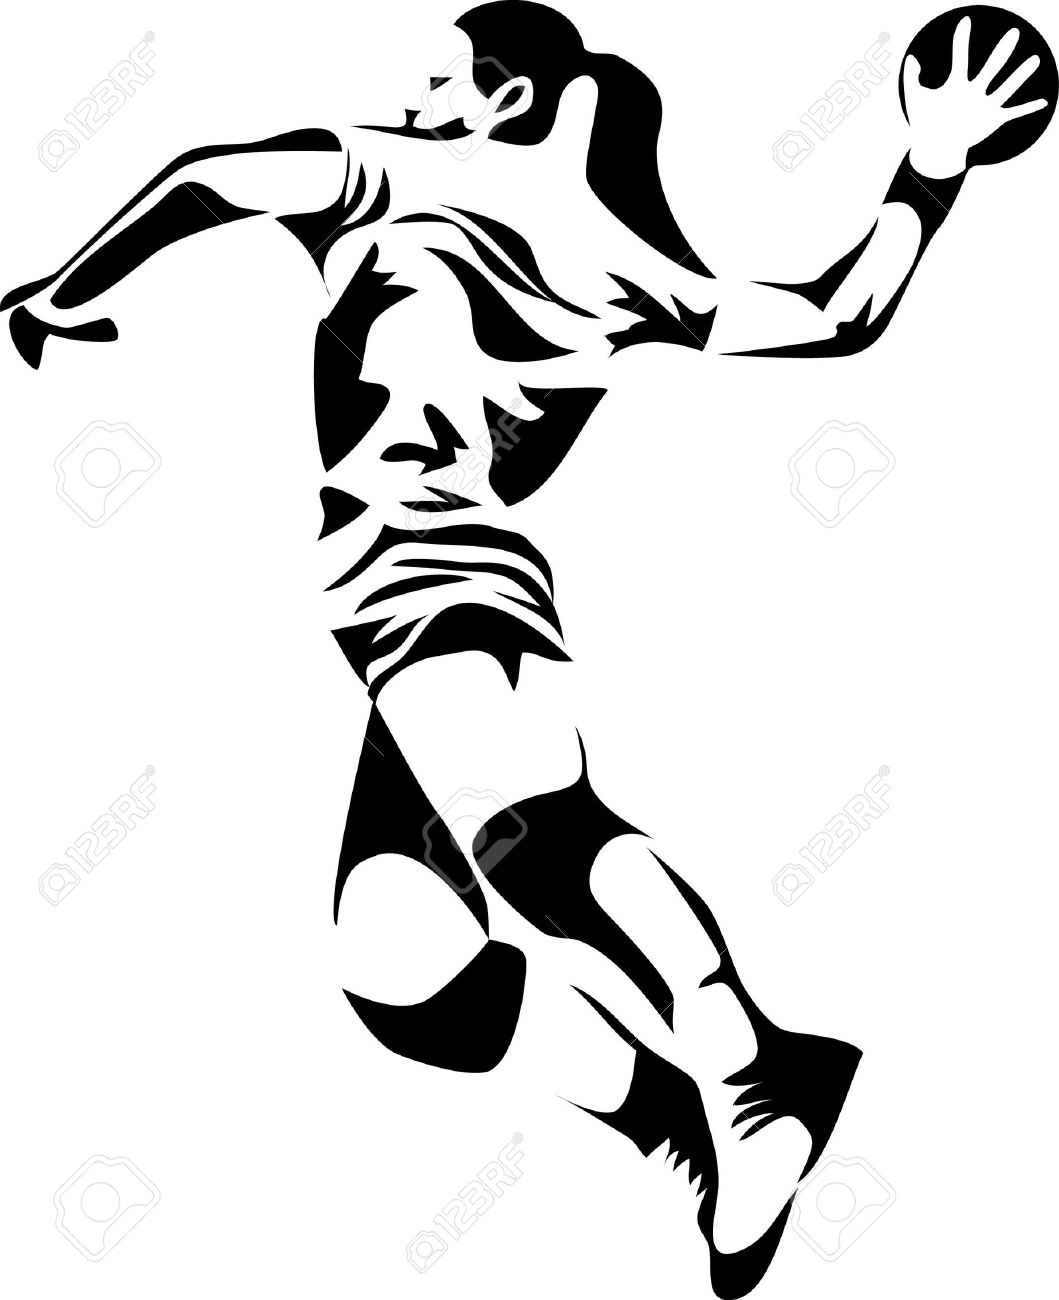 Handball Ball Clipart.